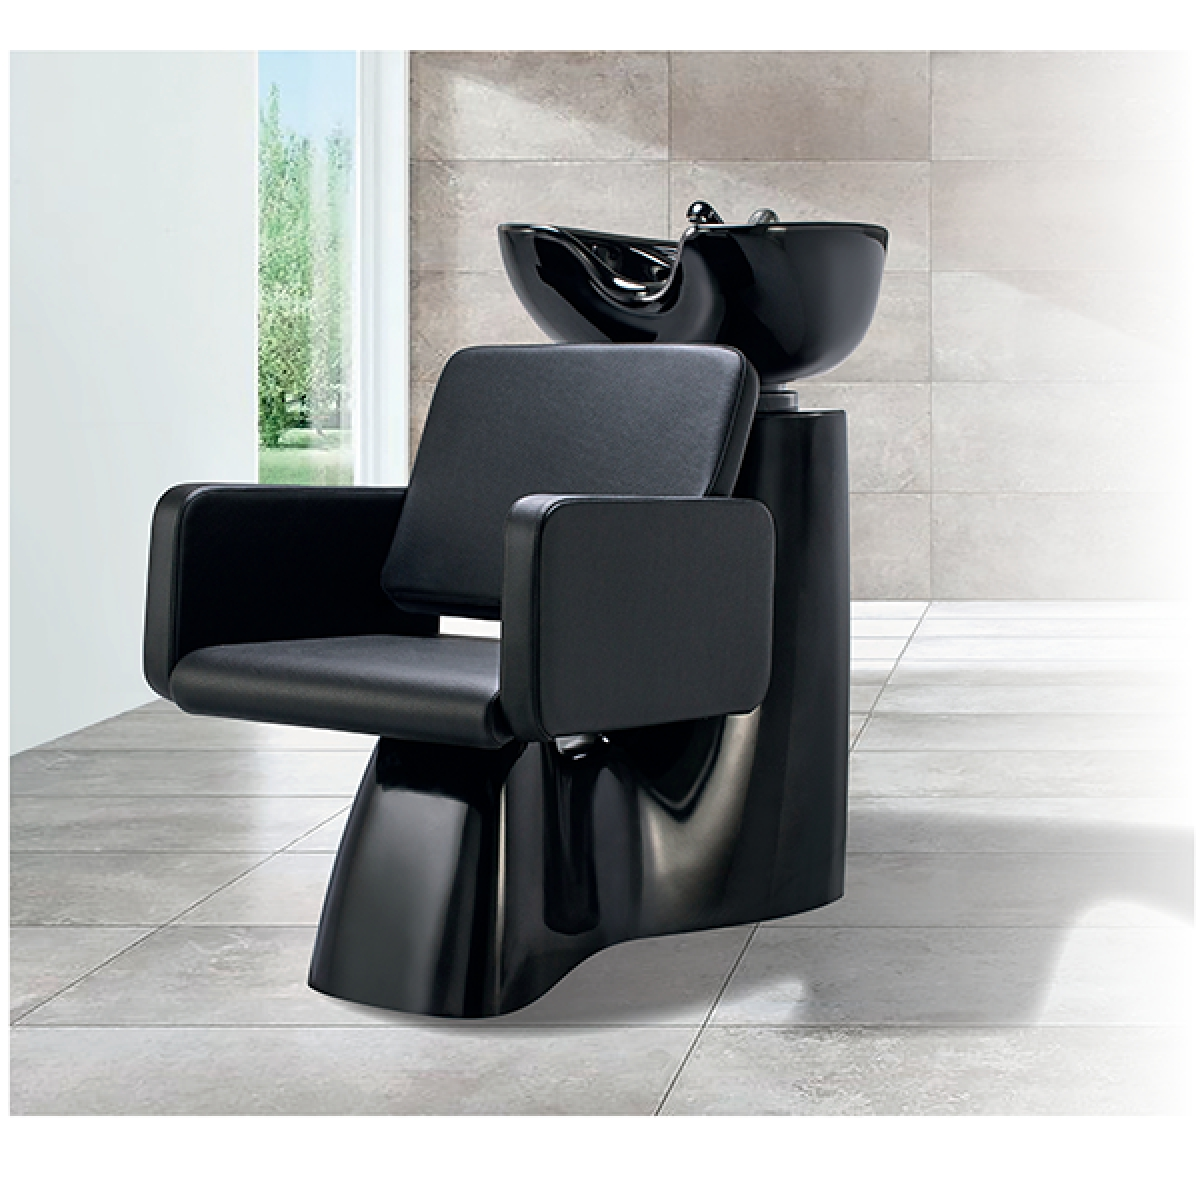 Salon Supply Store, Modern Salon Furniture, Cerrotti Salon Furniture